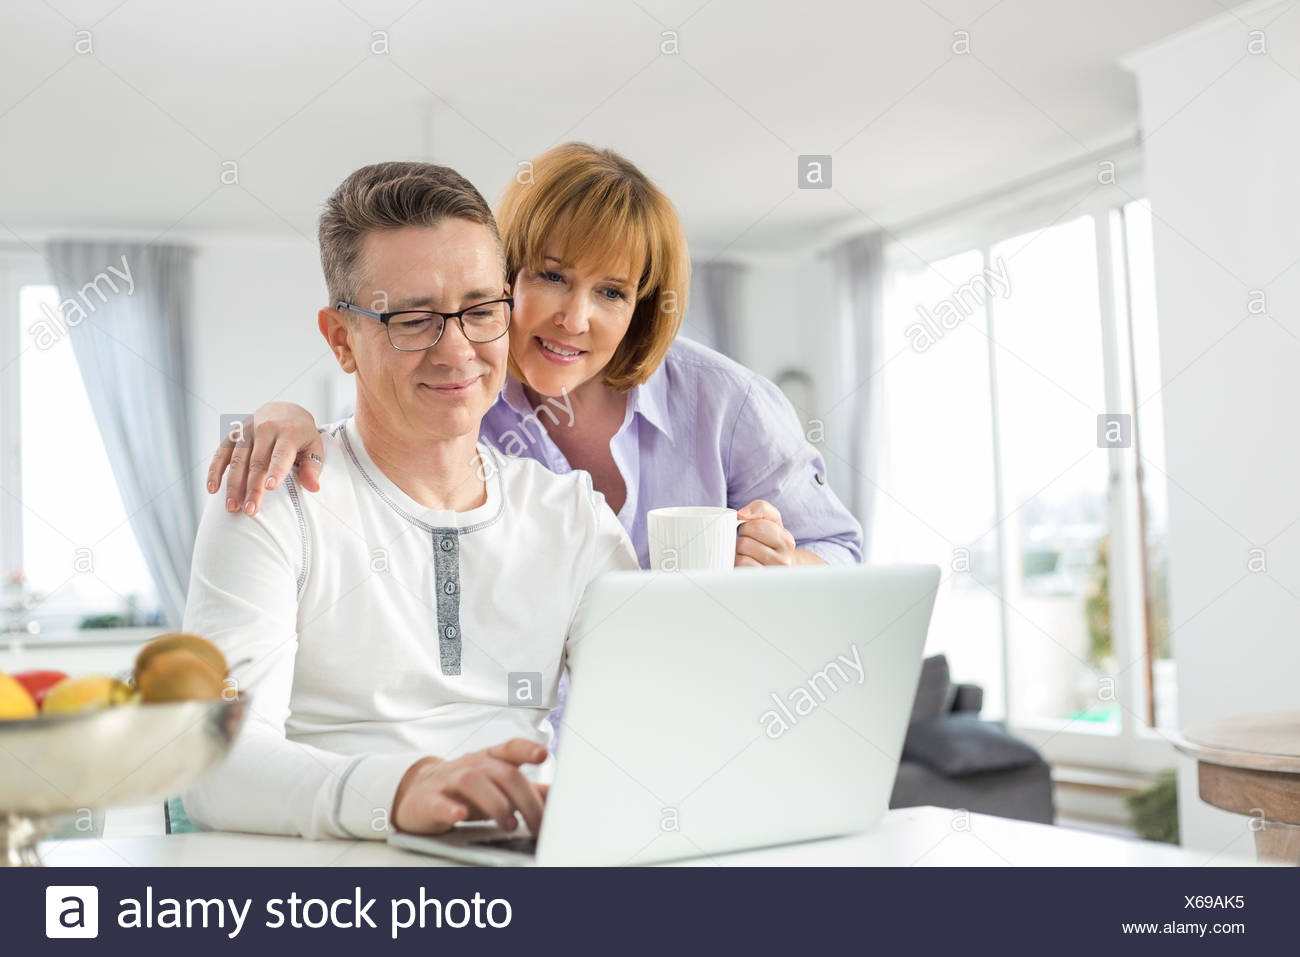 Loving couple using laptop together at home Stock Photo